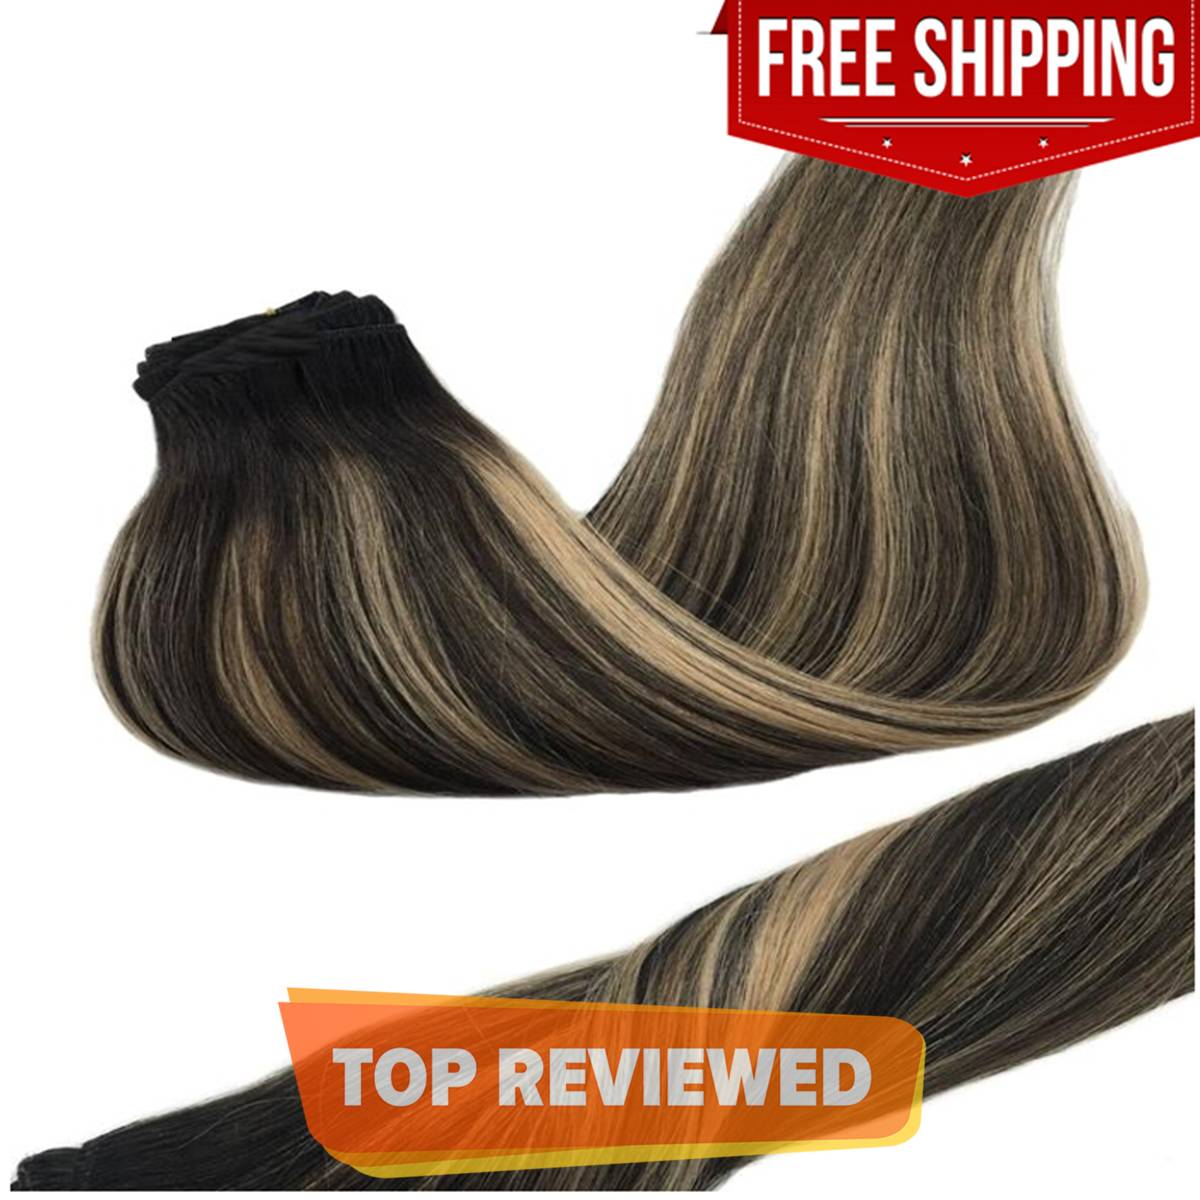 Long Straight Natural Hair Wig Extension 5 Clip In Hair Extension 30 Inch - Black Ombre Blonde